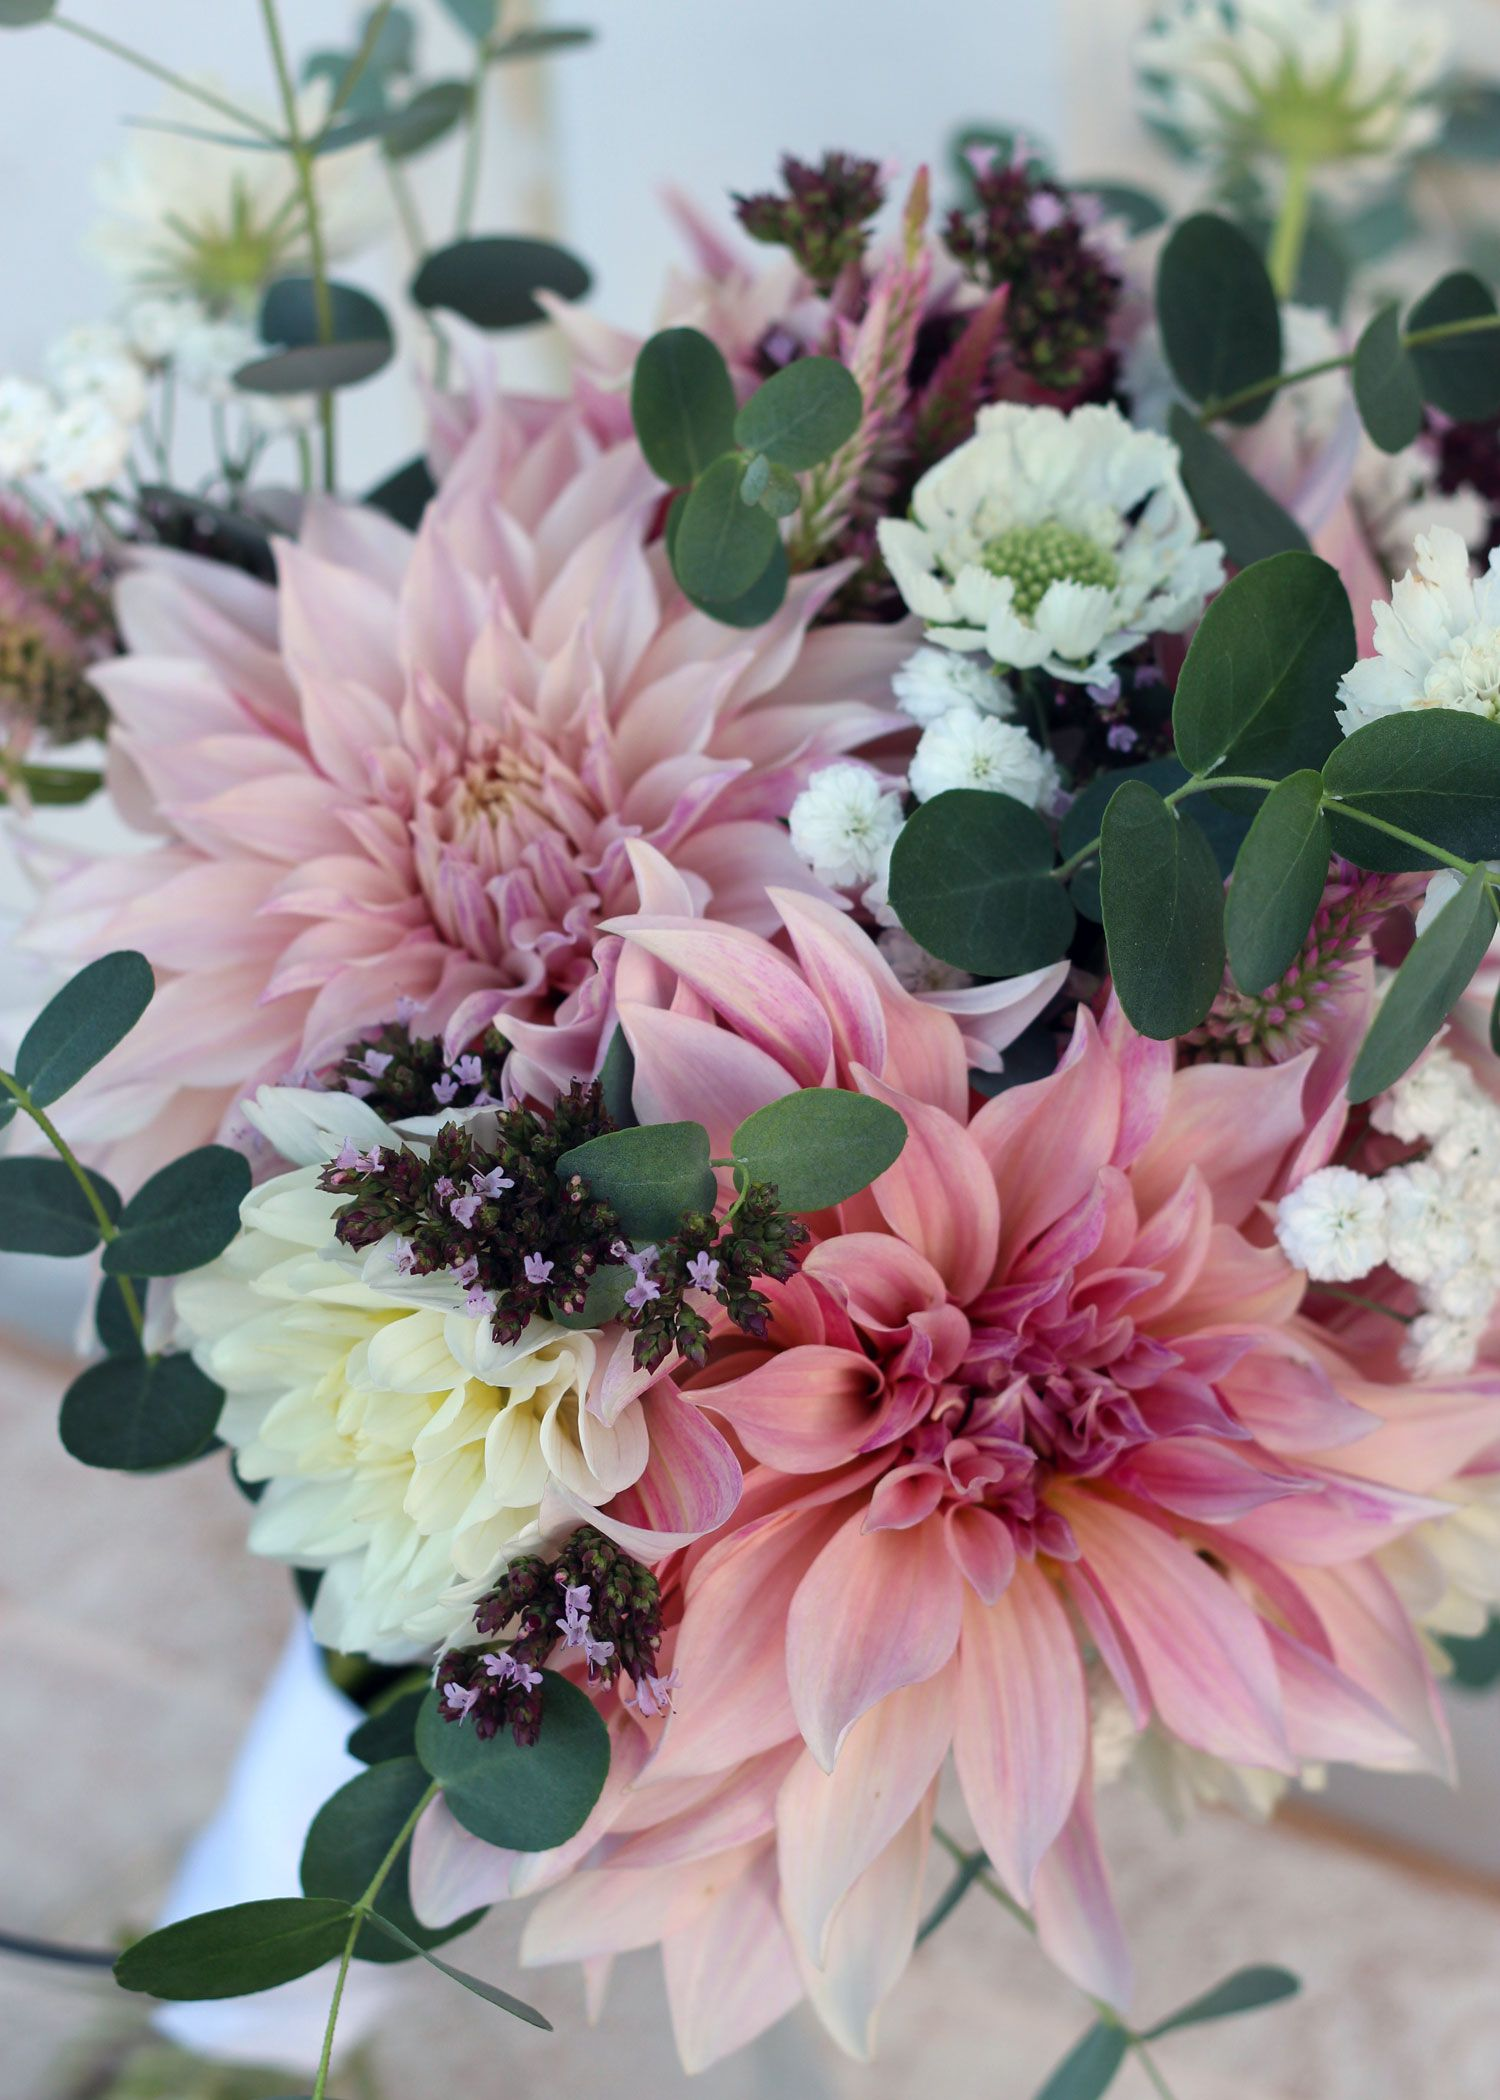 Brides Bouquet Cafe Au Lait Dahlias And Garden Flowers Flowers Bouquet Flower Bouquet Wedding Fall Wedding Flowers